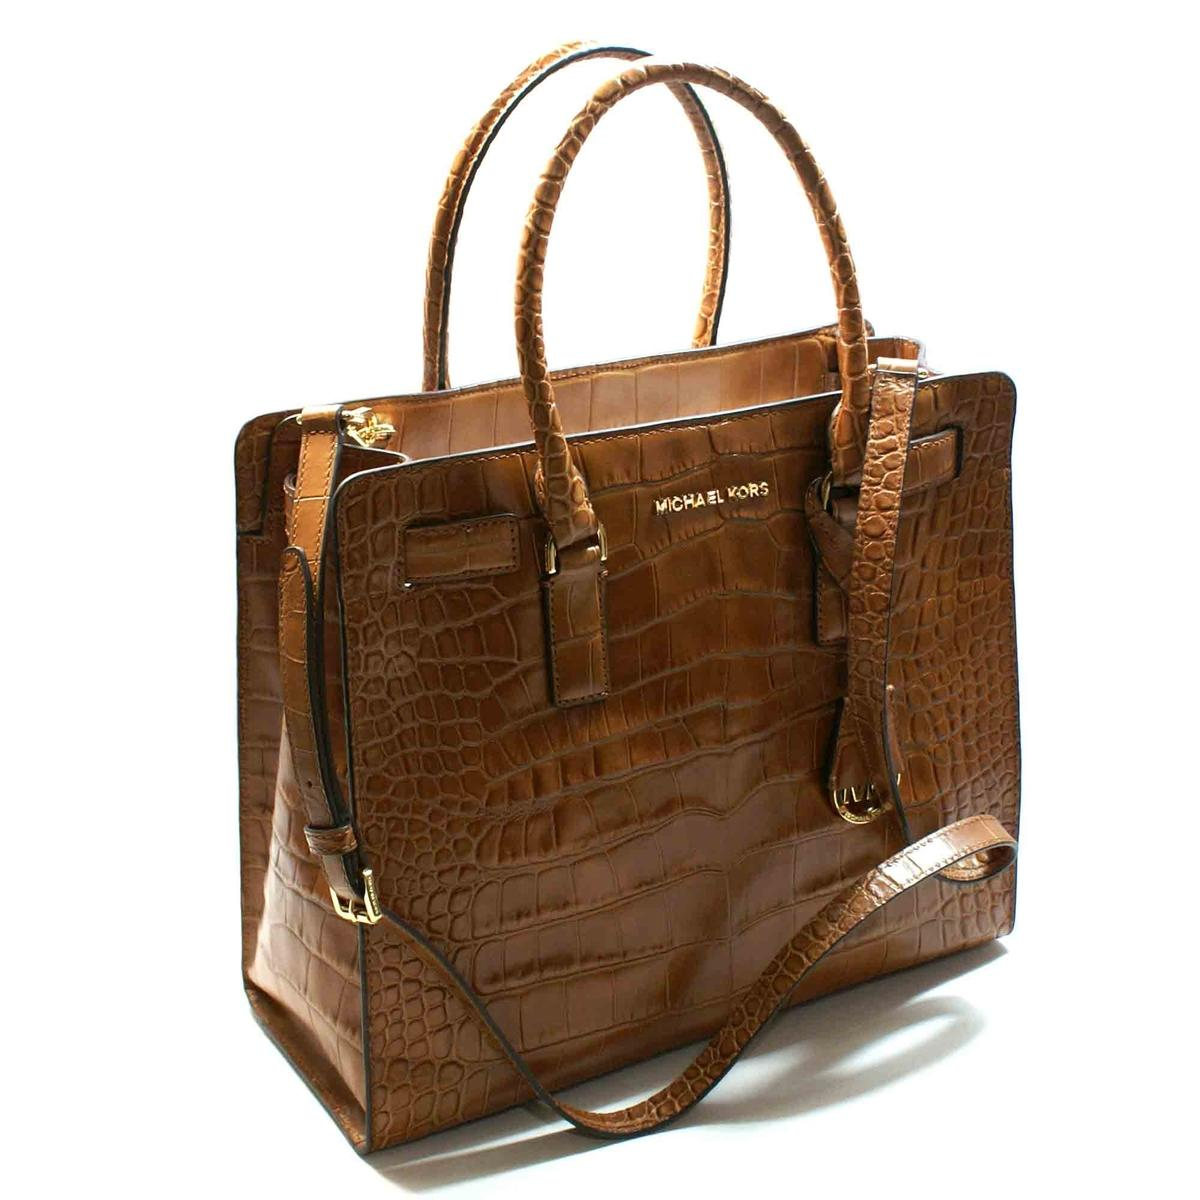 Michael Kors Dillon Large Embossed Leather Tote Shoulder Bag Walnut 30h4gait3e Michael Kors